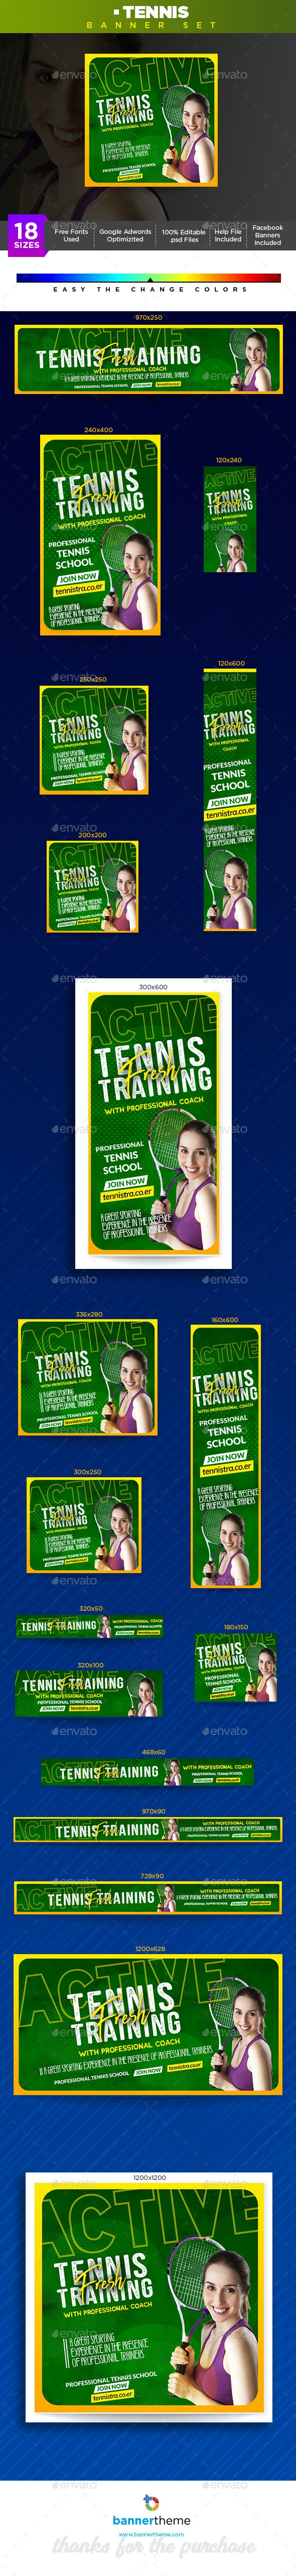 Tennis Banner - Banners & Ads Web Elements